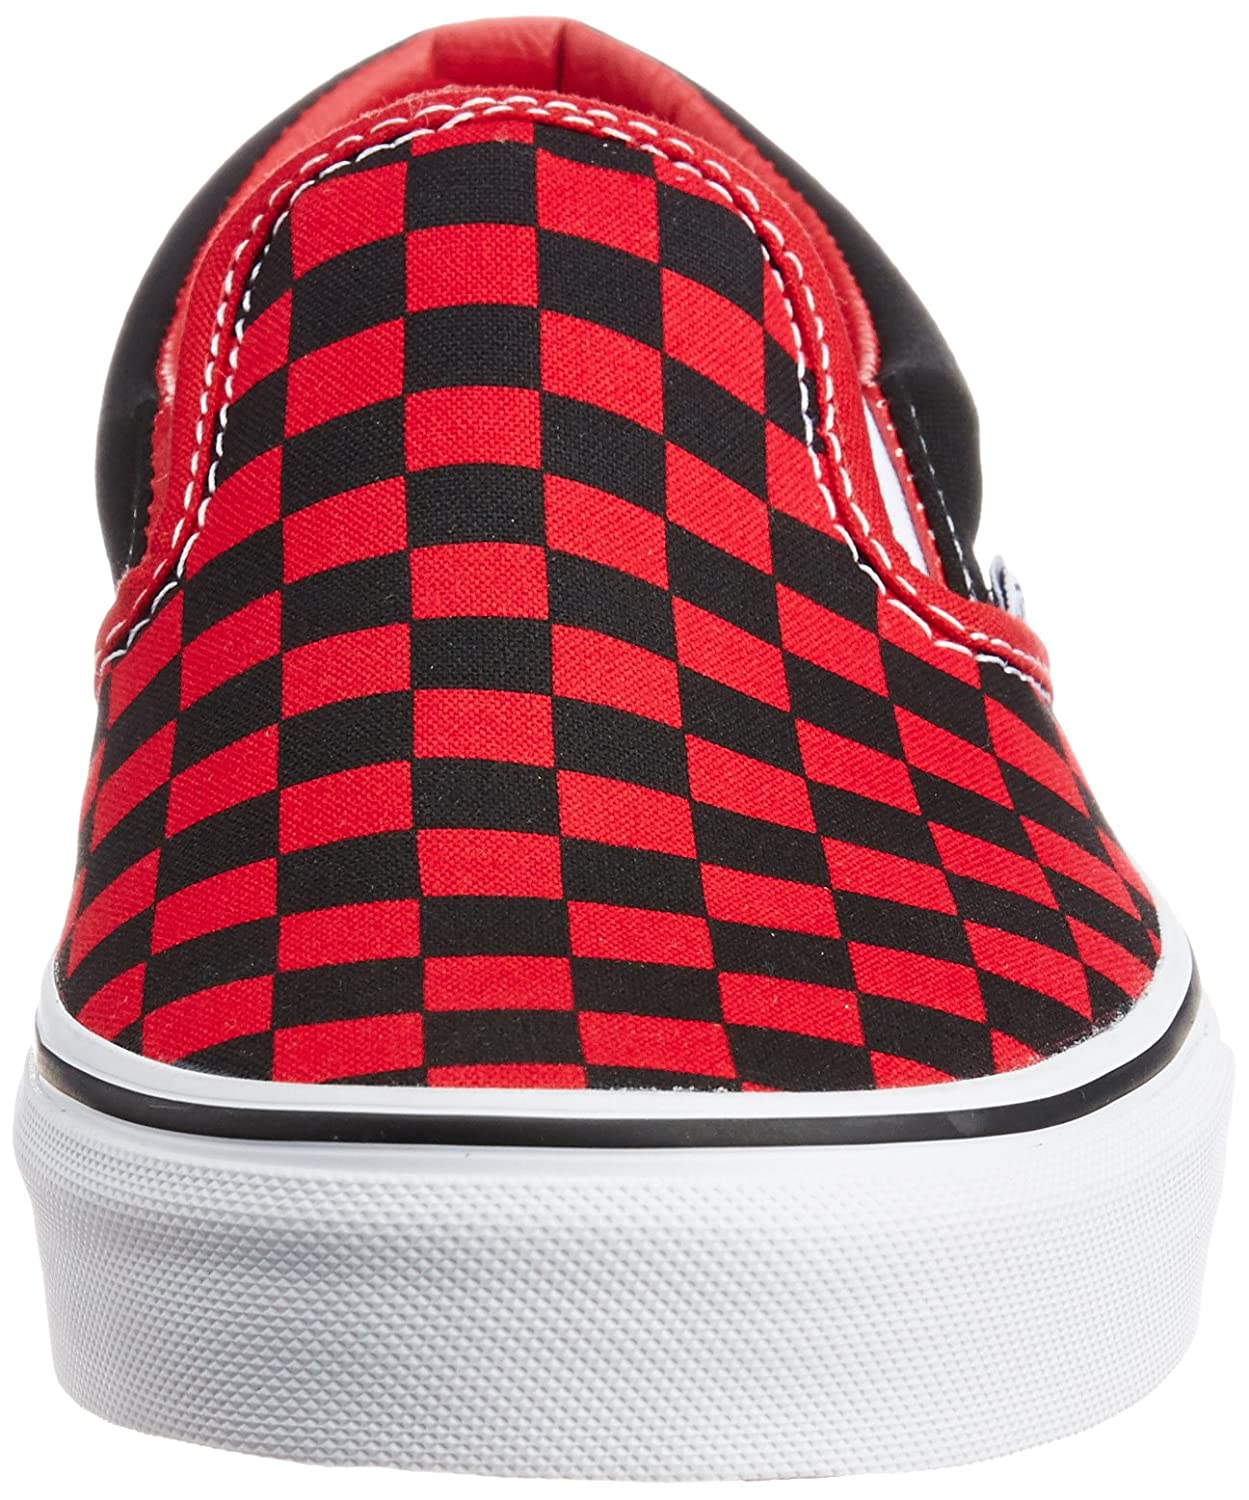 Camionnettes Rouge Checkerboard wO2EdQ